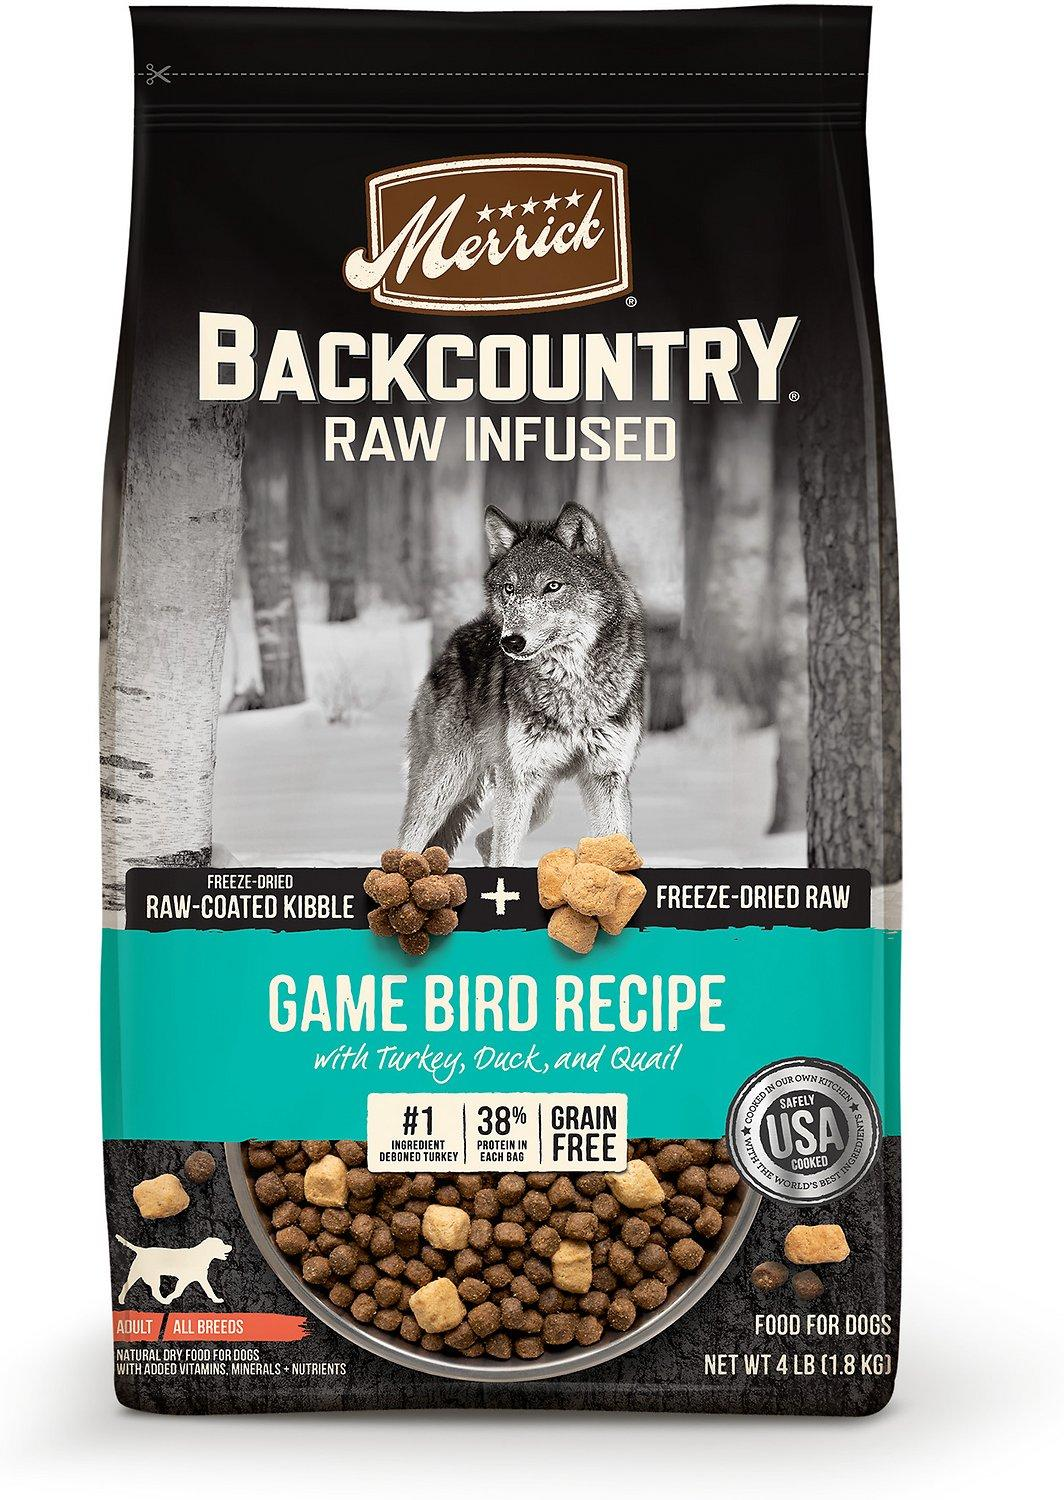 Merrick Backcountry Raw Infused Game Bird Freeze-Dried Dry Dog Food, 4-lb